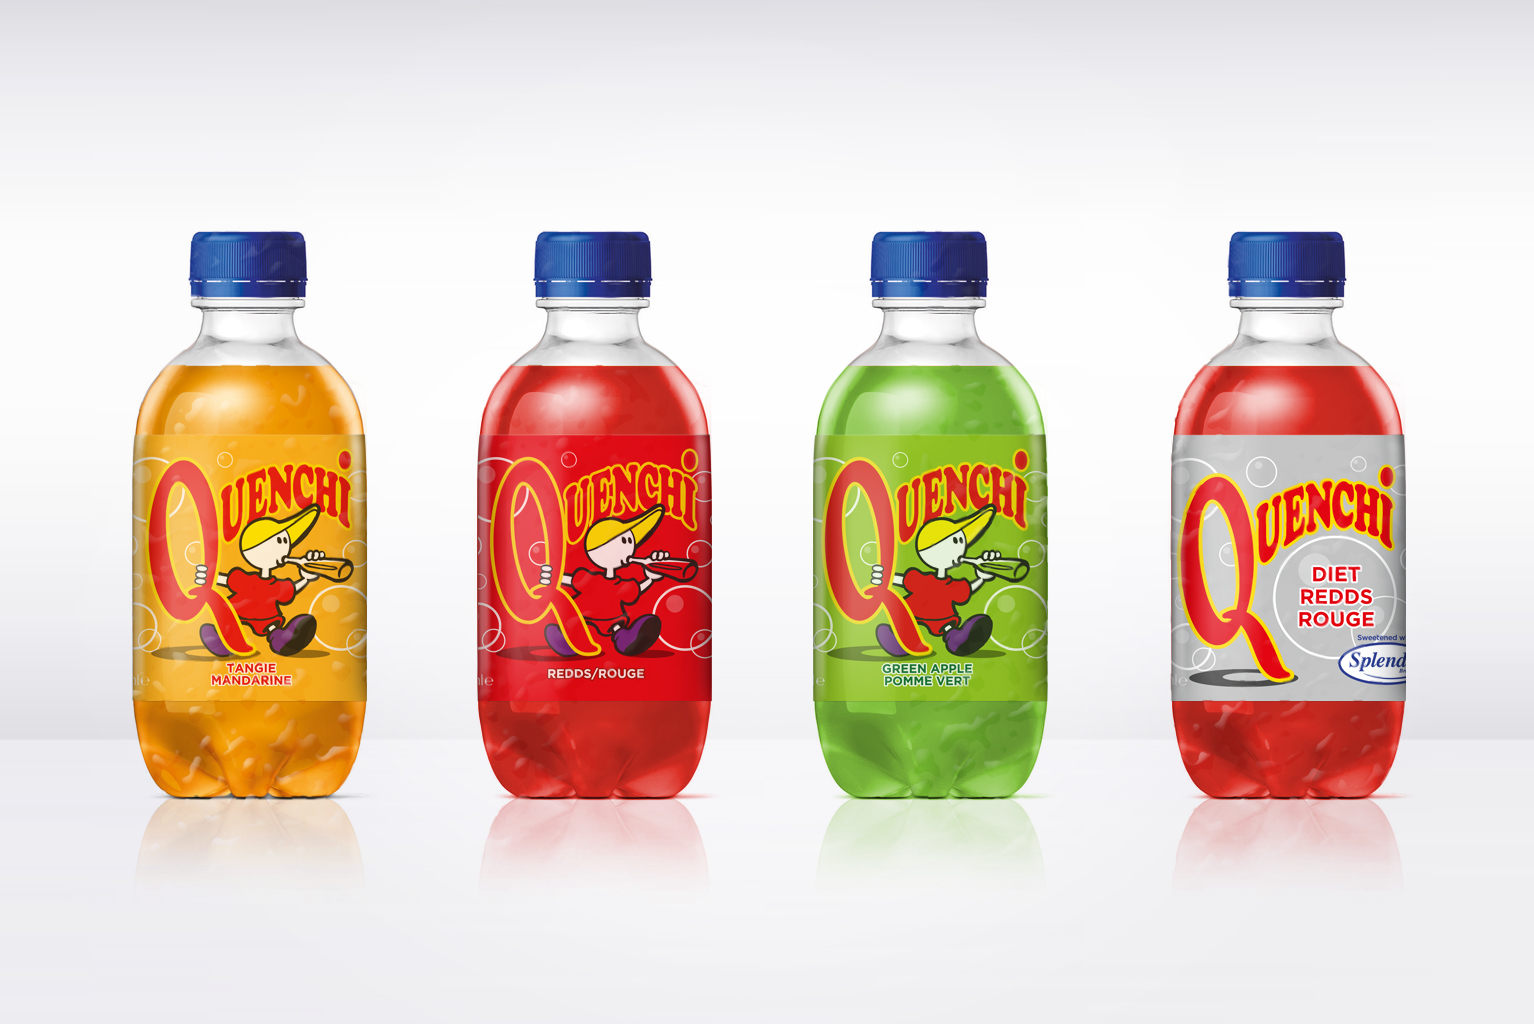 Quenchi soft drink bottles